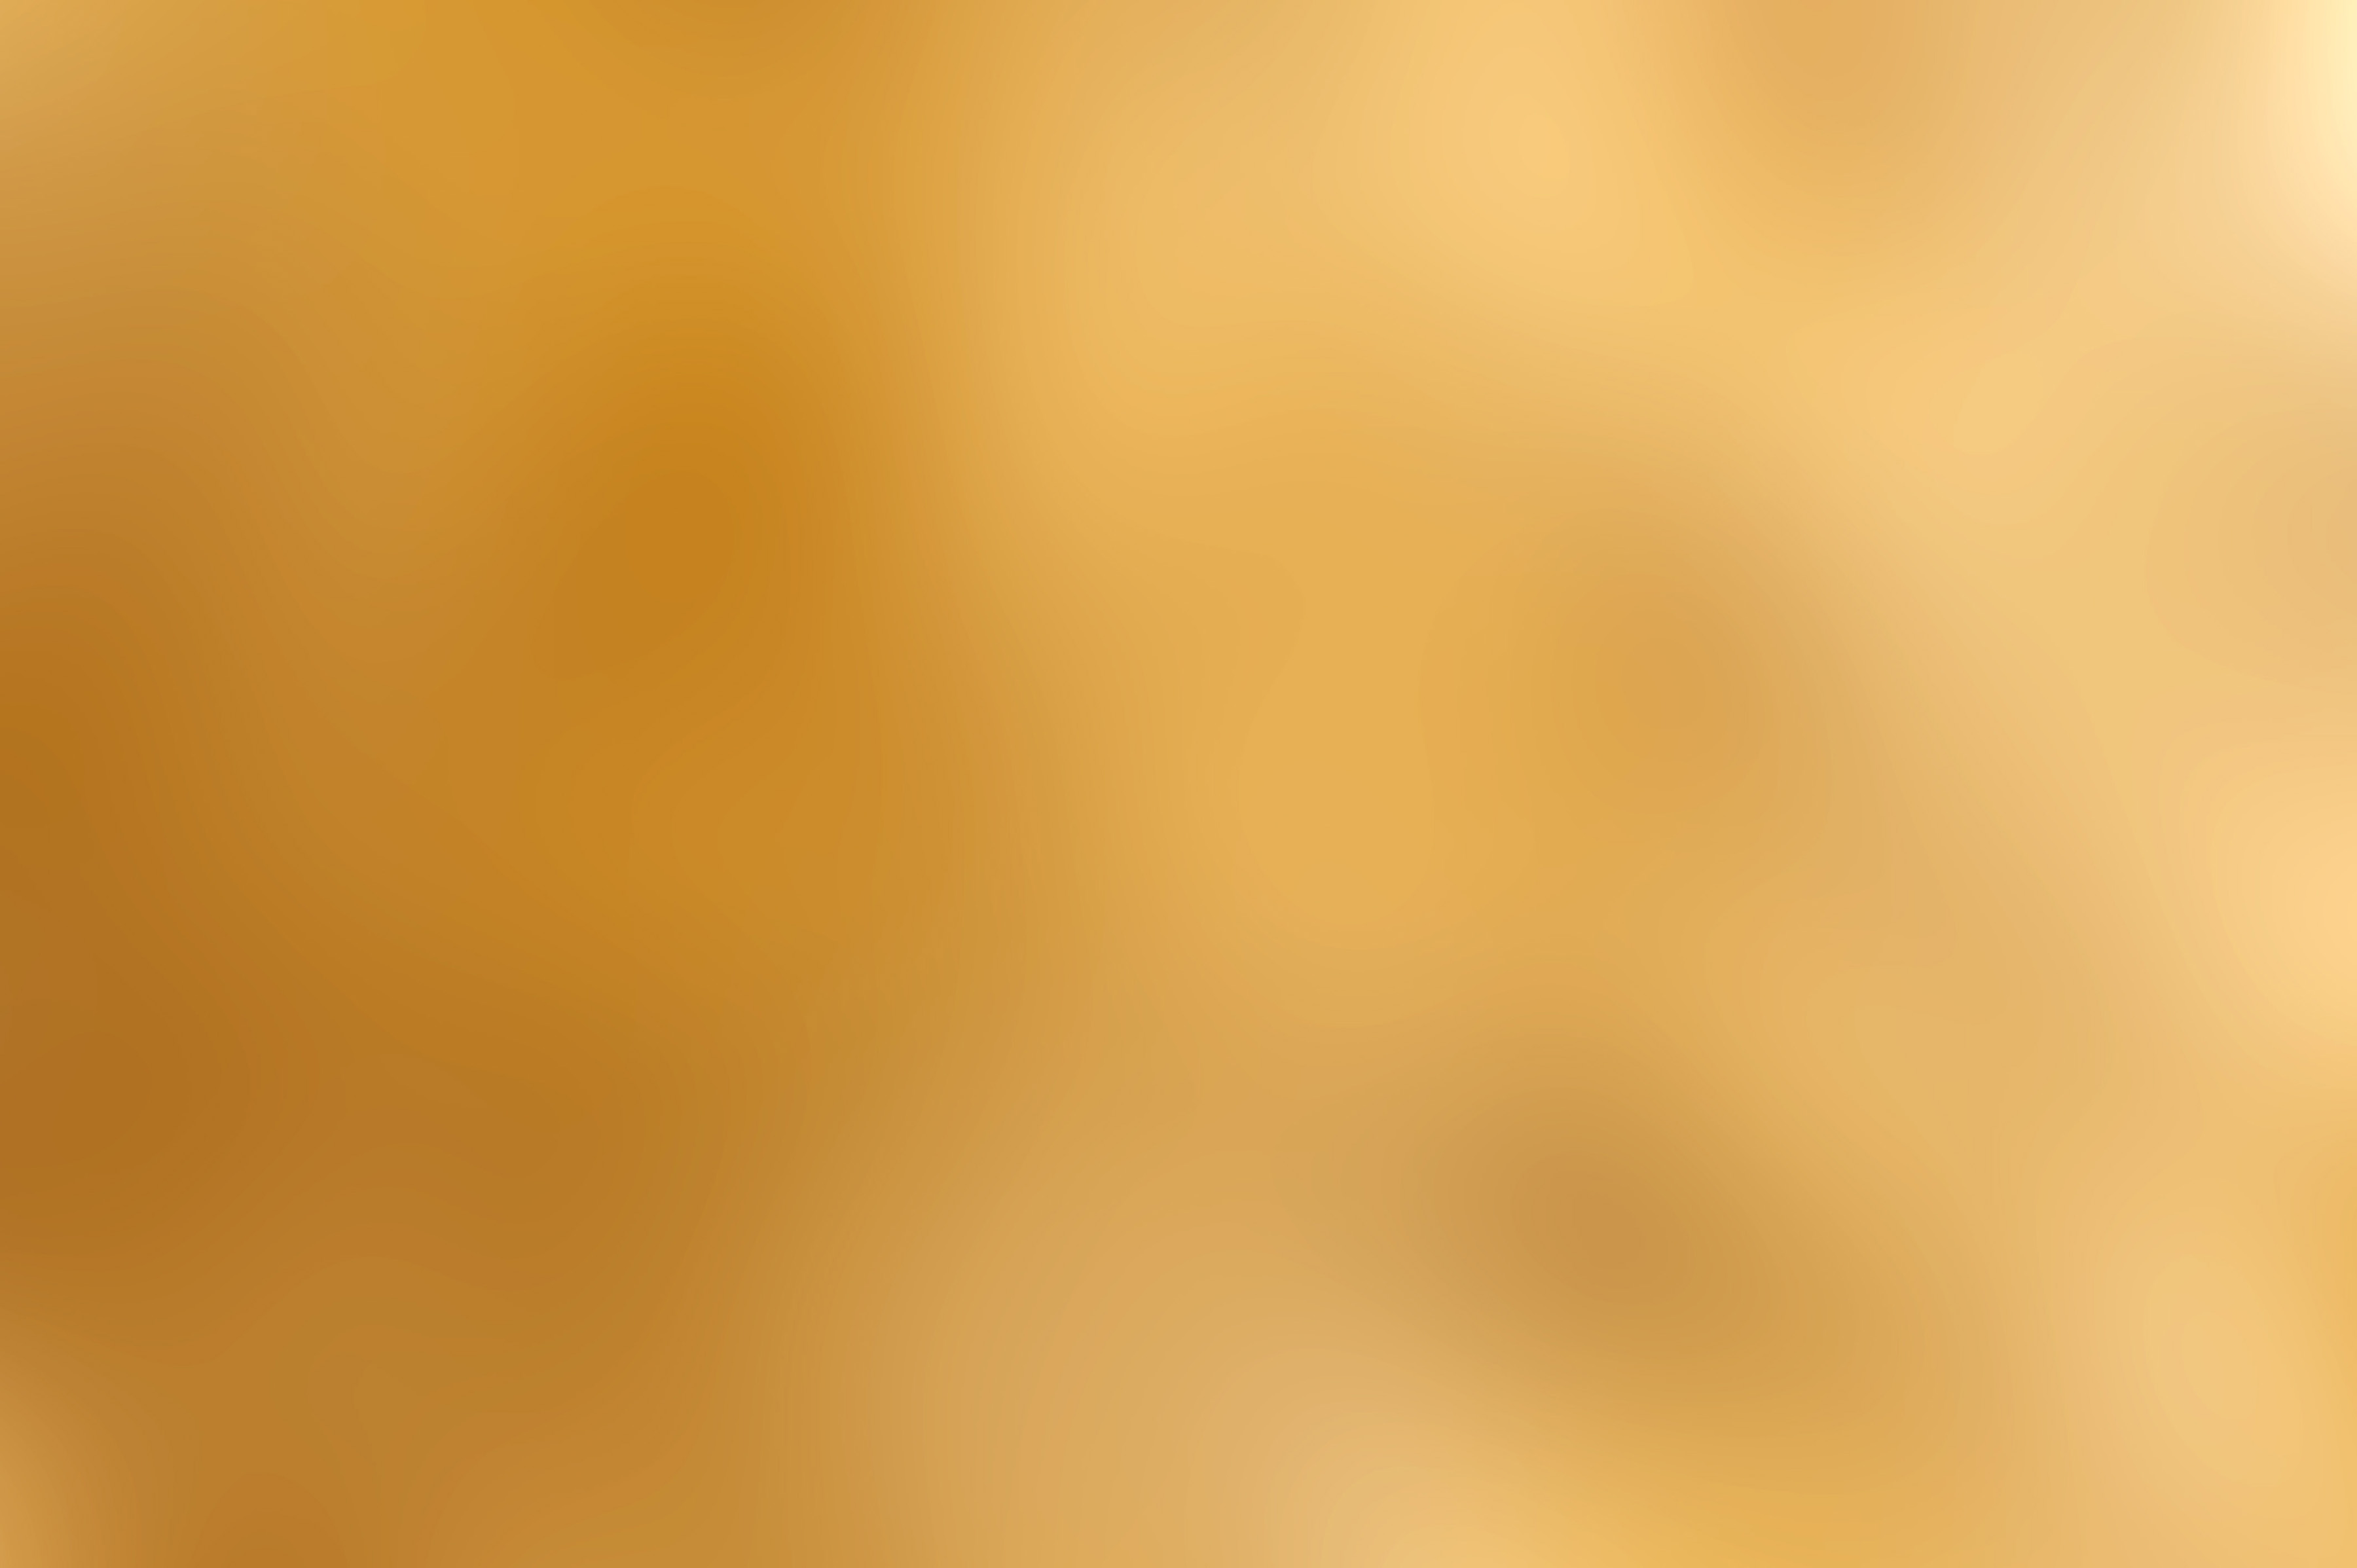 empty gold surface for background designs free backgrounds and